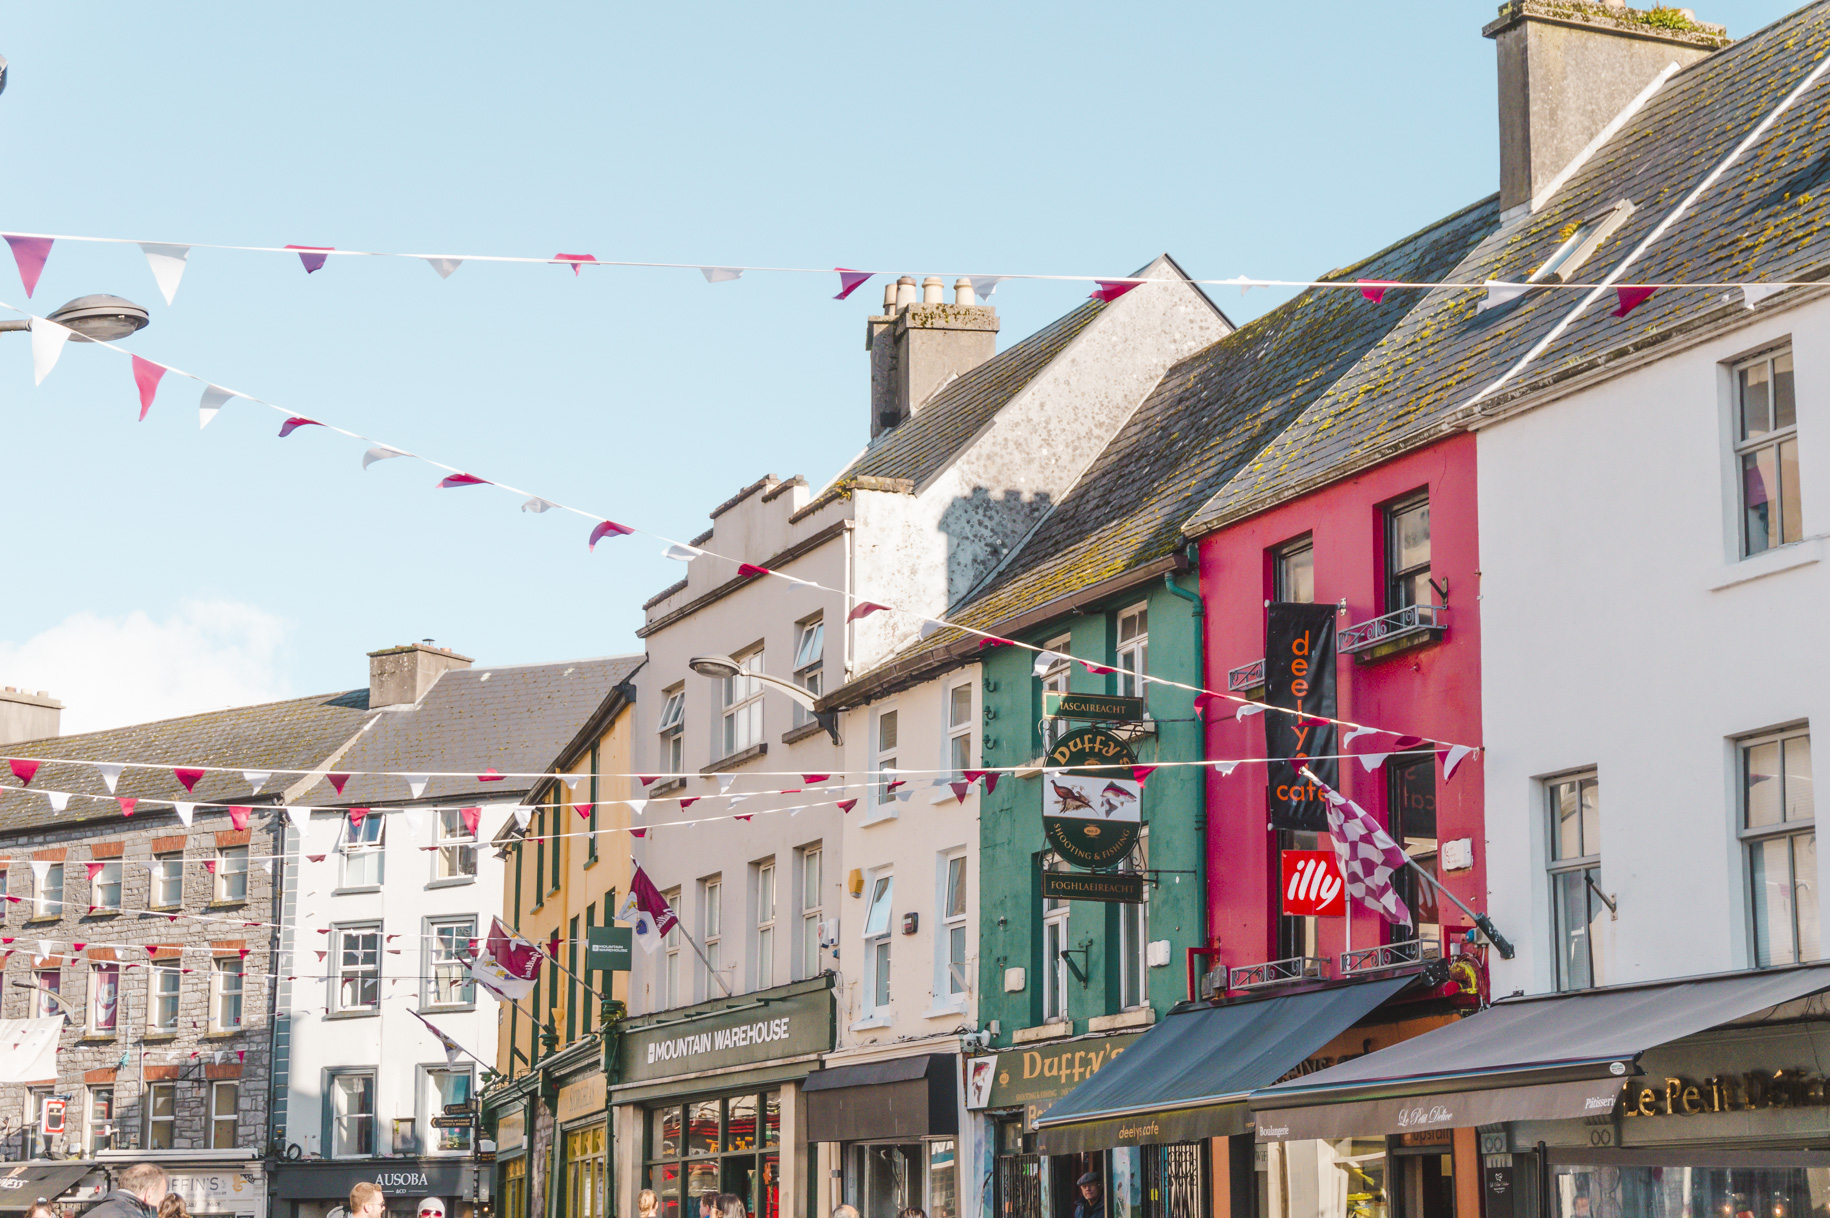 Colourful buildings and flags in Galway, Ireland. Add Galway to your Ireland itinerary and Europe itinerary.